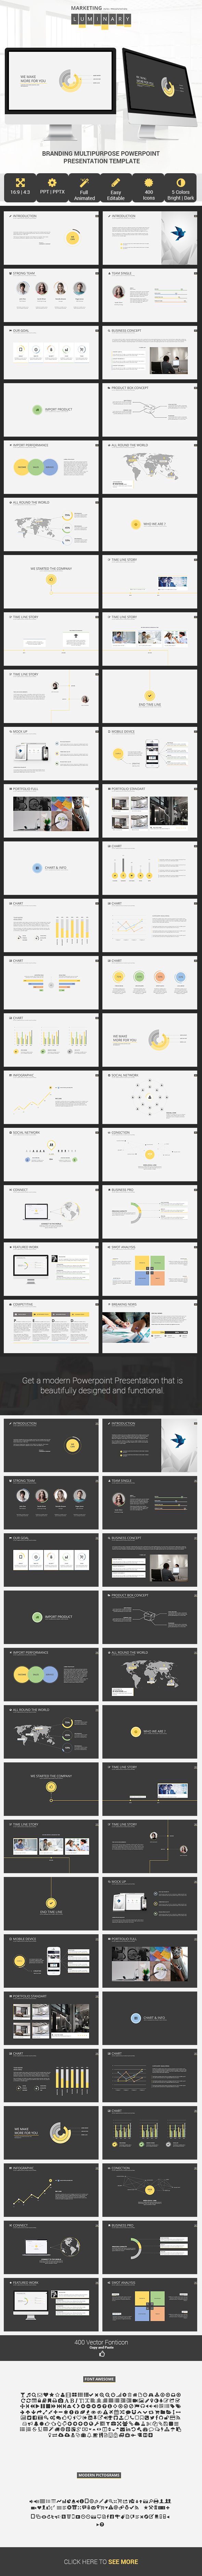 Luminary Presentation Template V  Sample Business Plan Swot